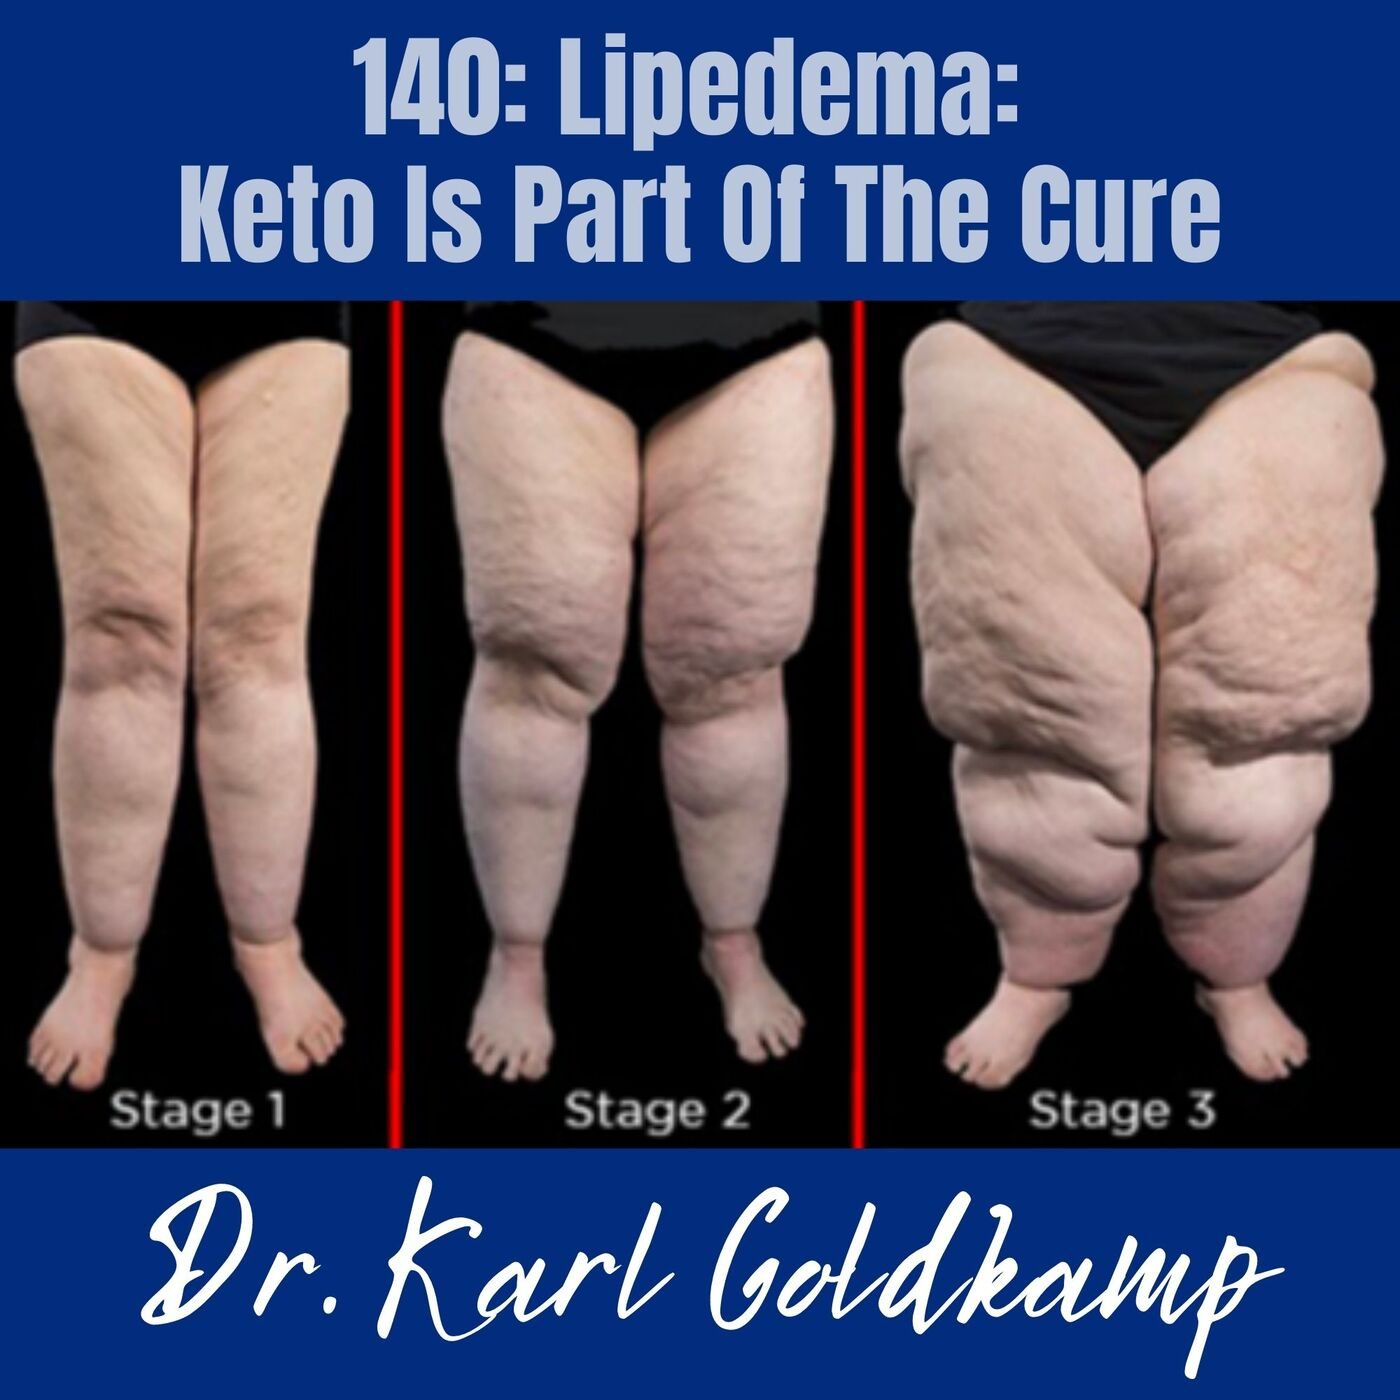 140: Lipedema: Keto Is Part Of The Cure